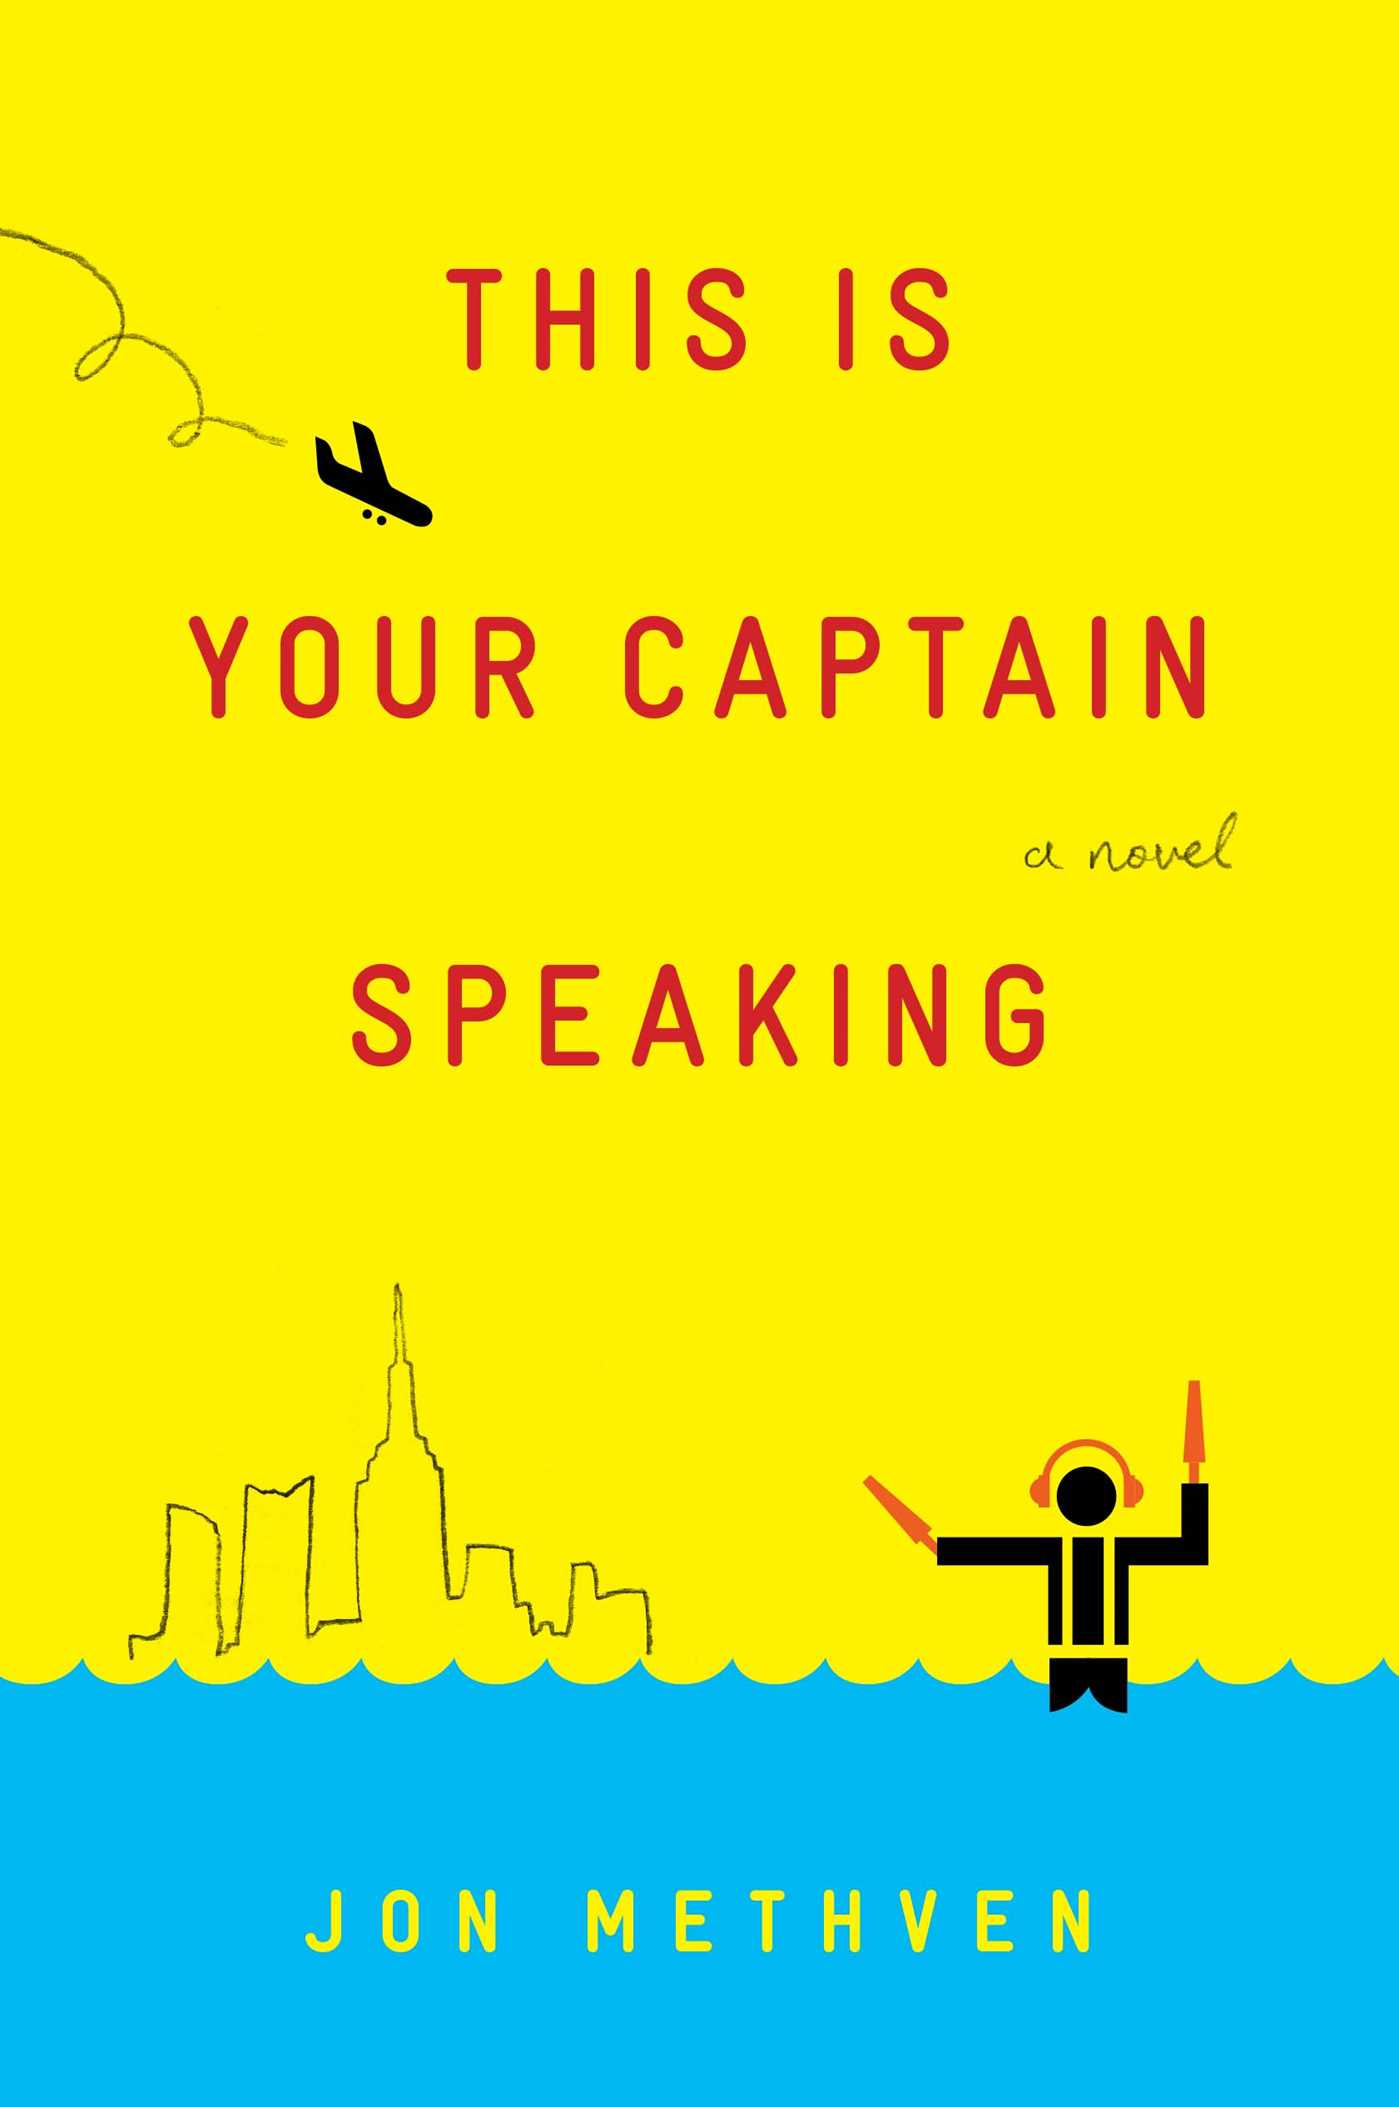 This-is-your-captain-speaking-9781451642155_hr